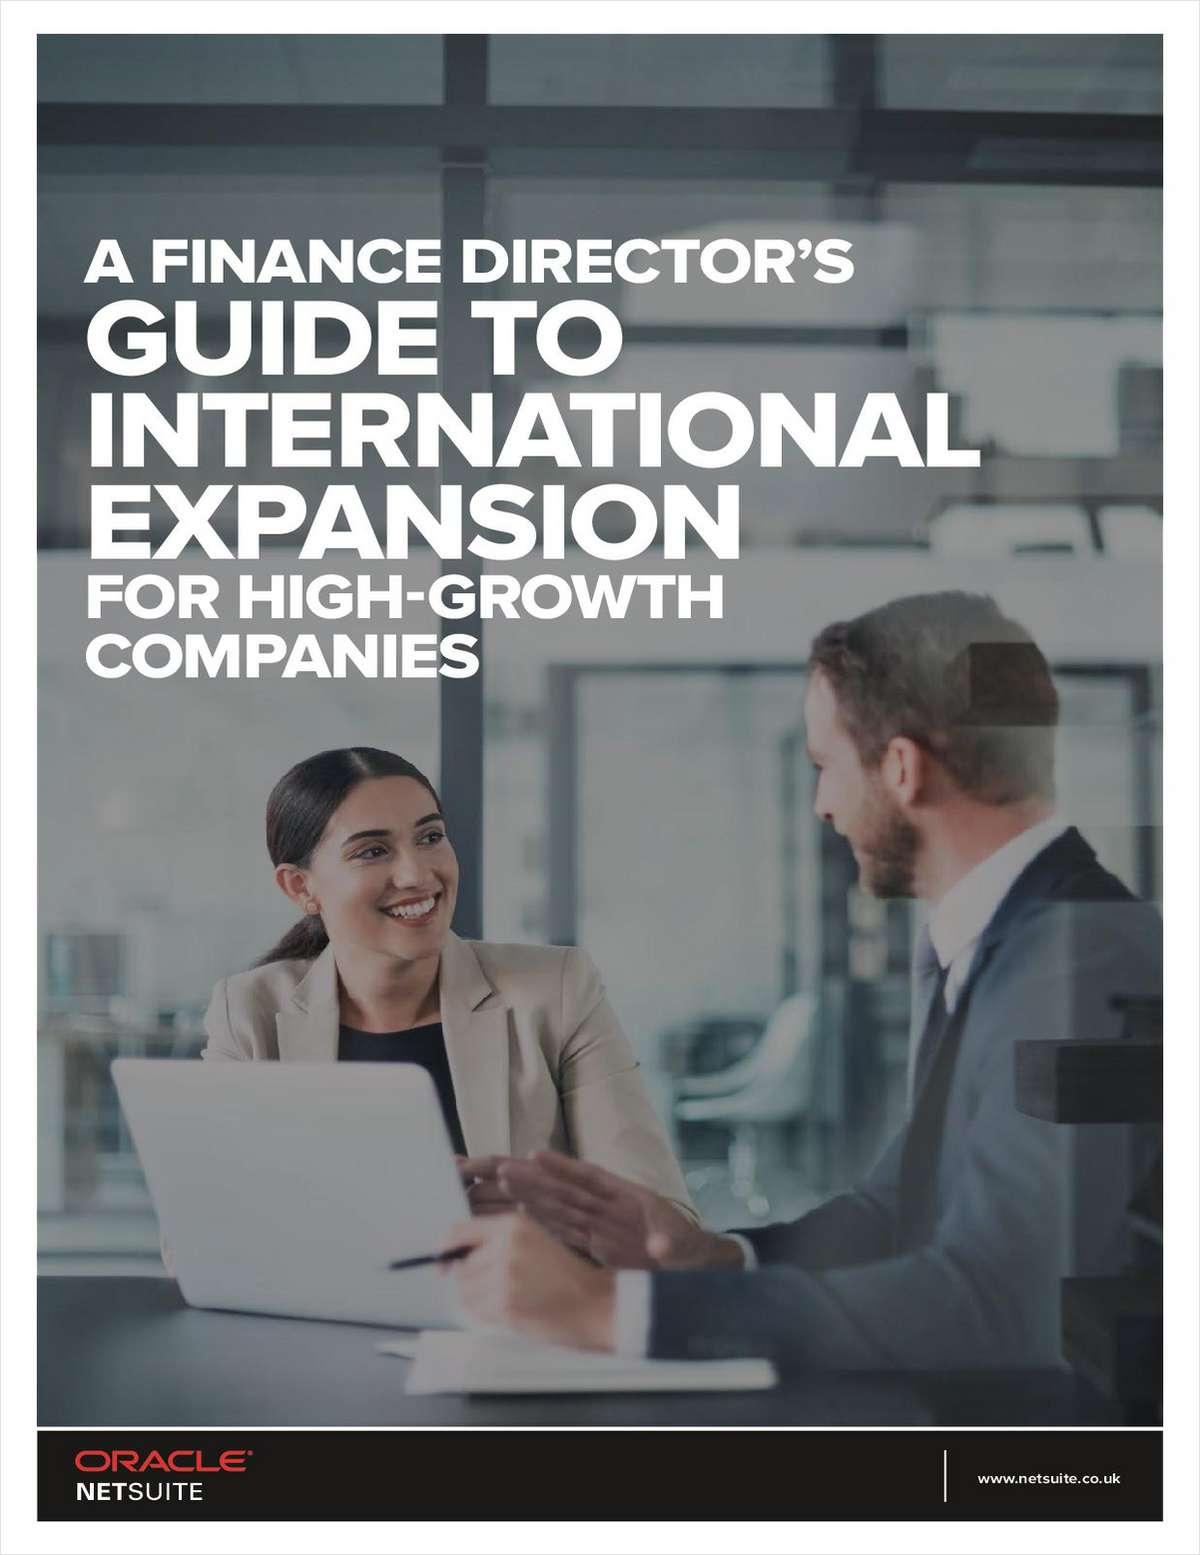 A Finance Director's Guide to International Expansion for High-Growth Companies.